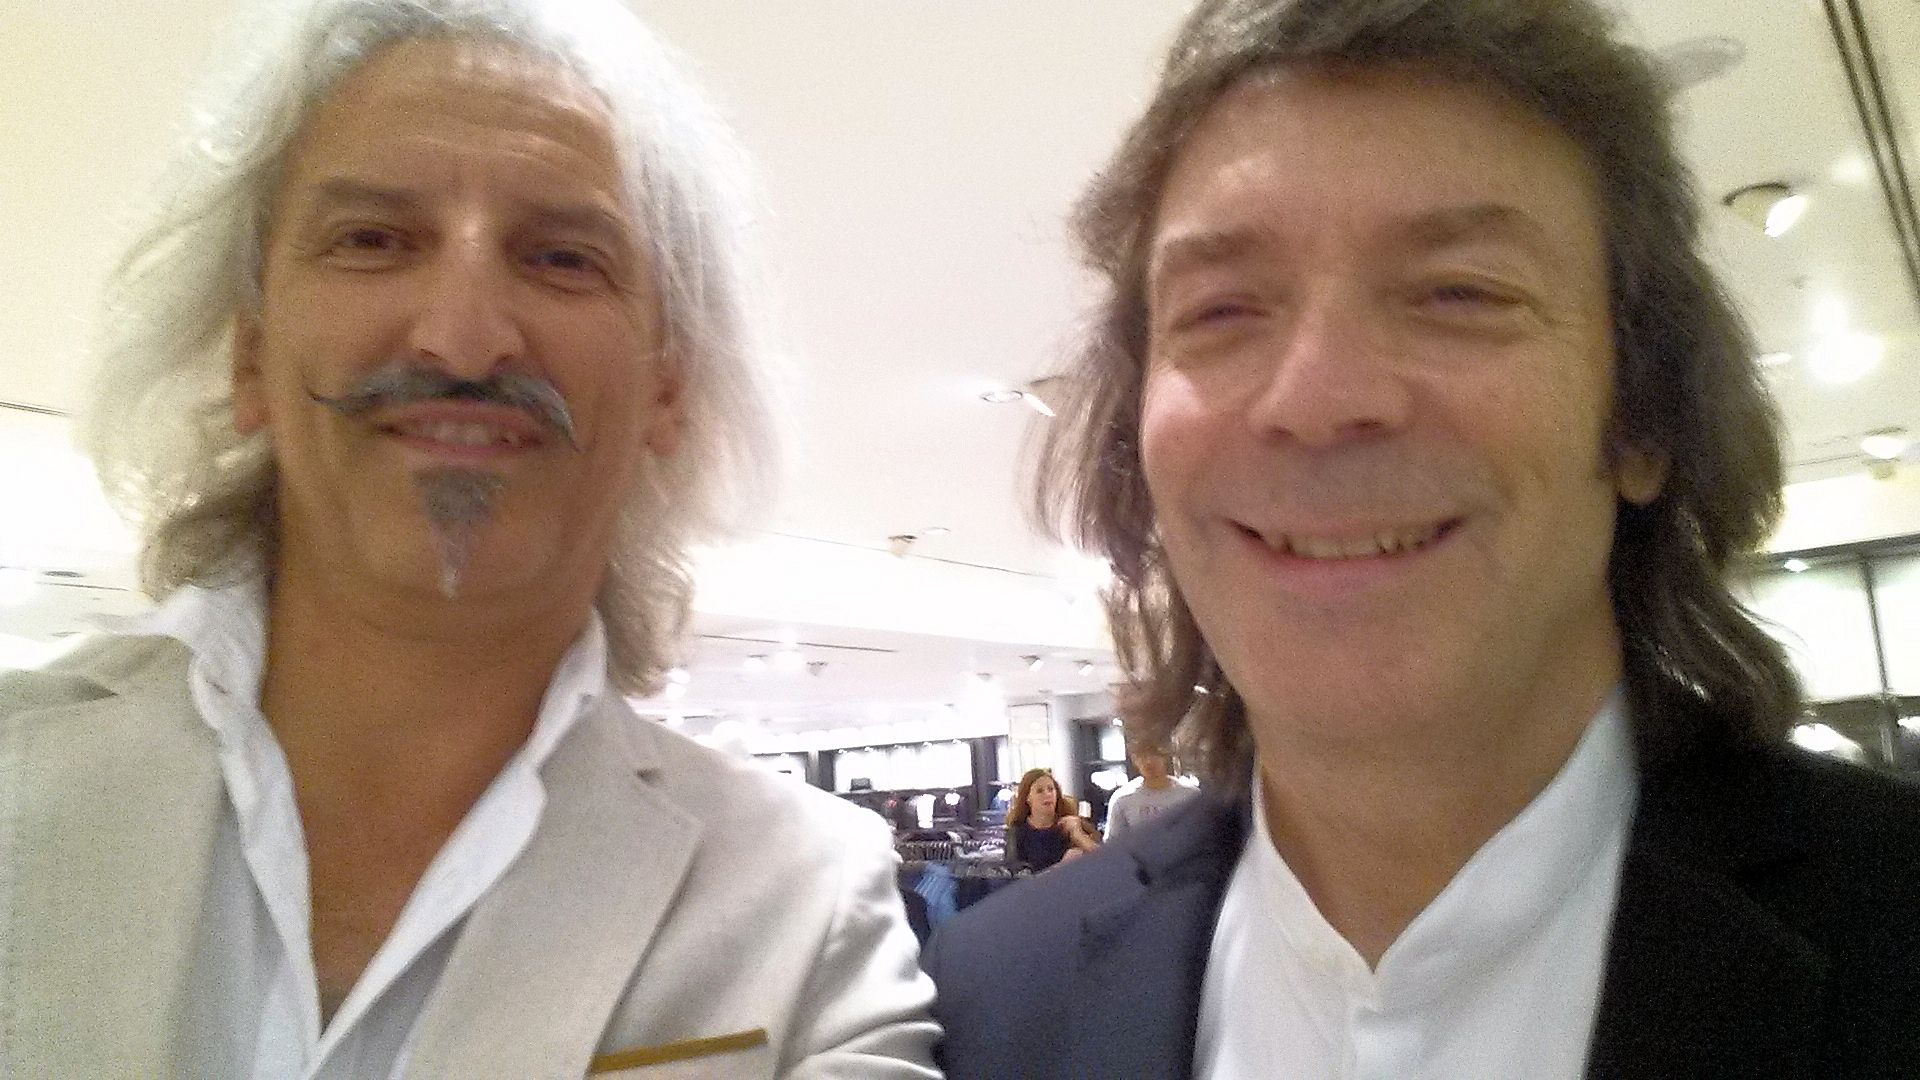 Steve Hackett & Me in Zara Oxford St [18 Sep 2014]